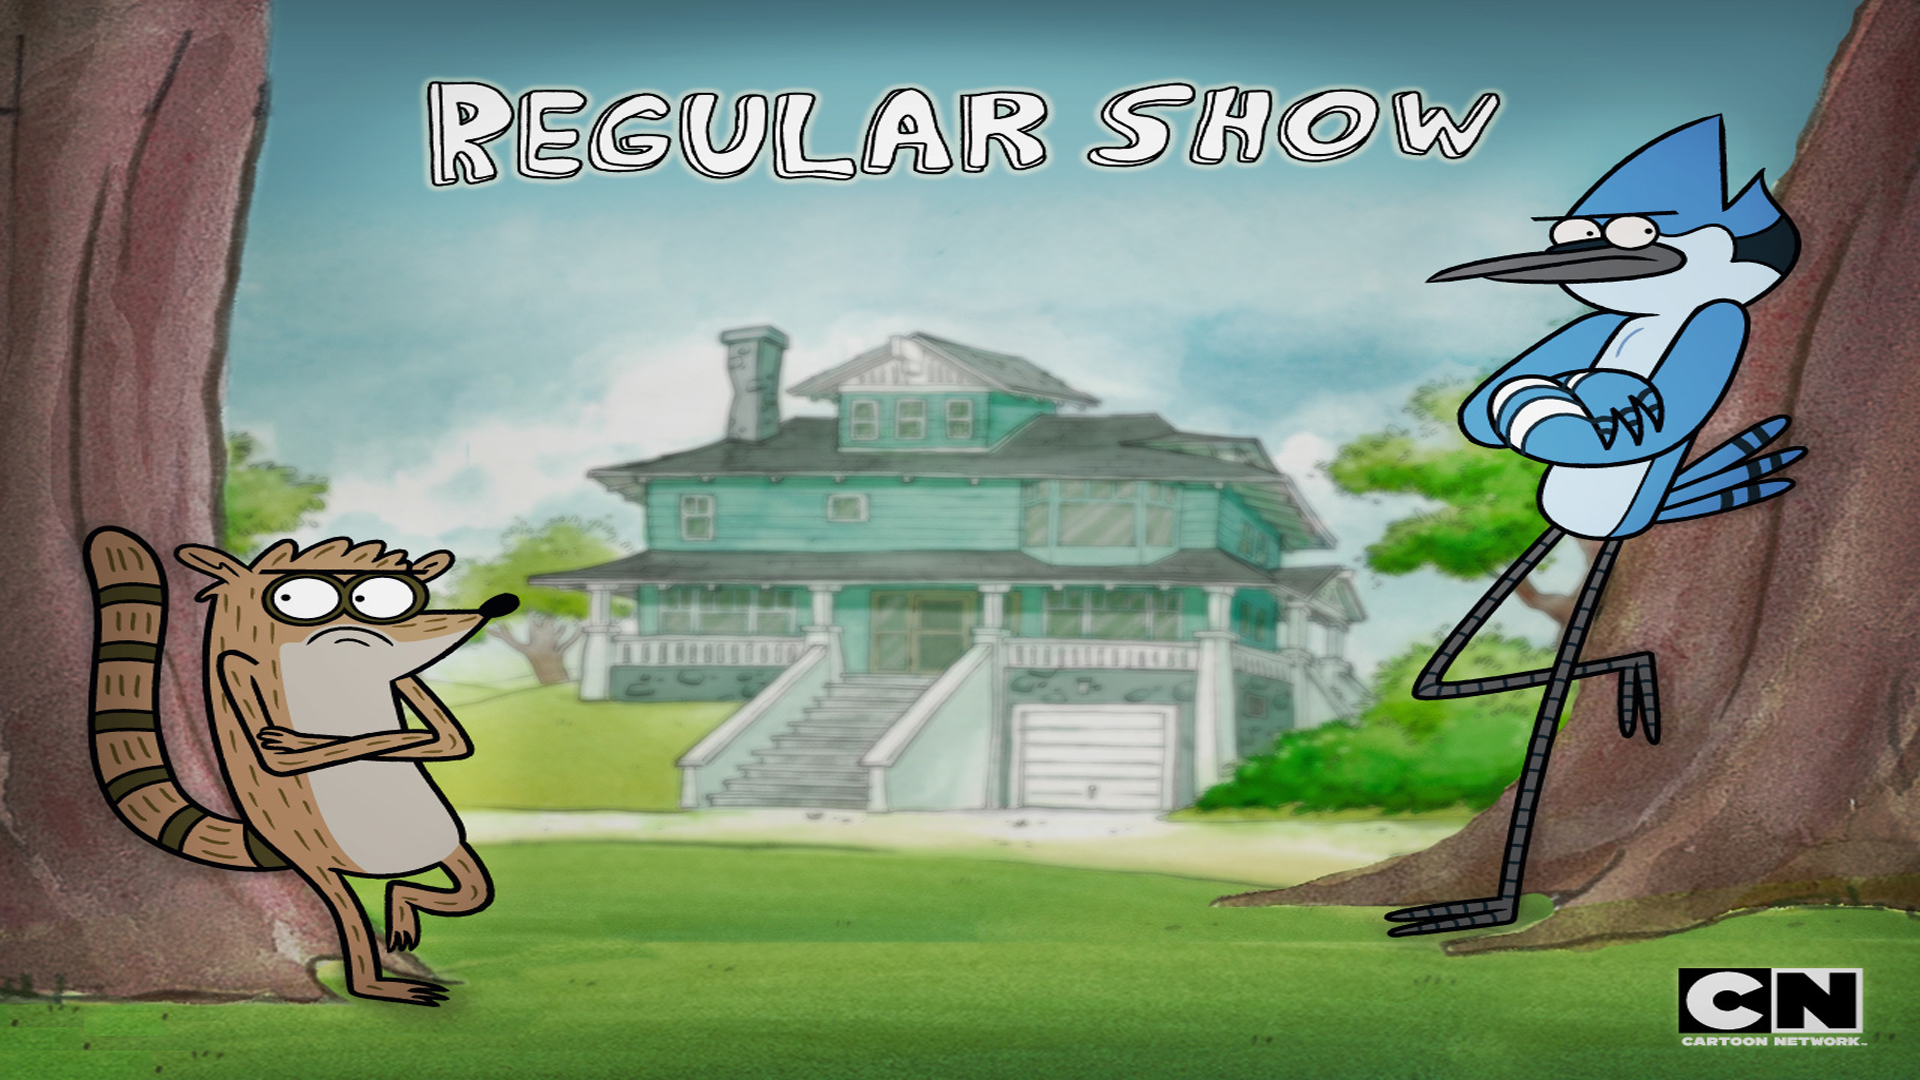 Download The Photos Regular Show